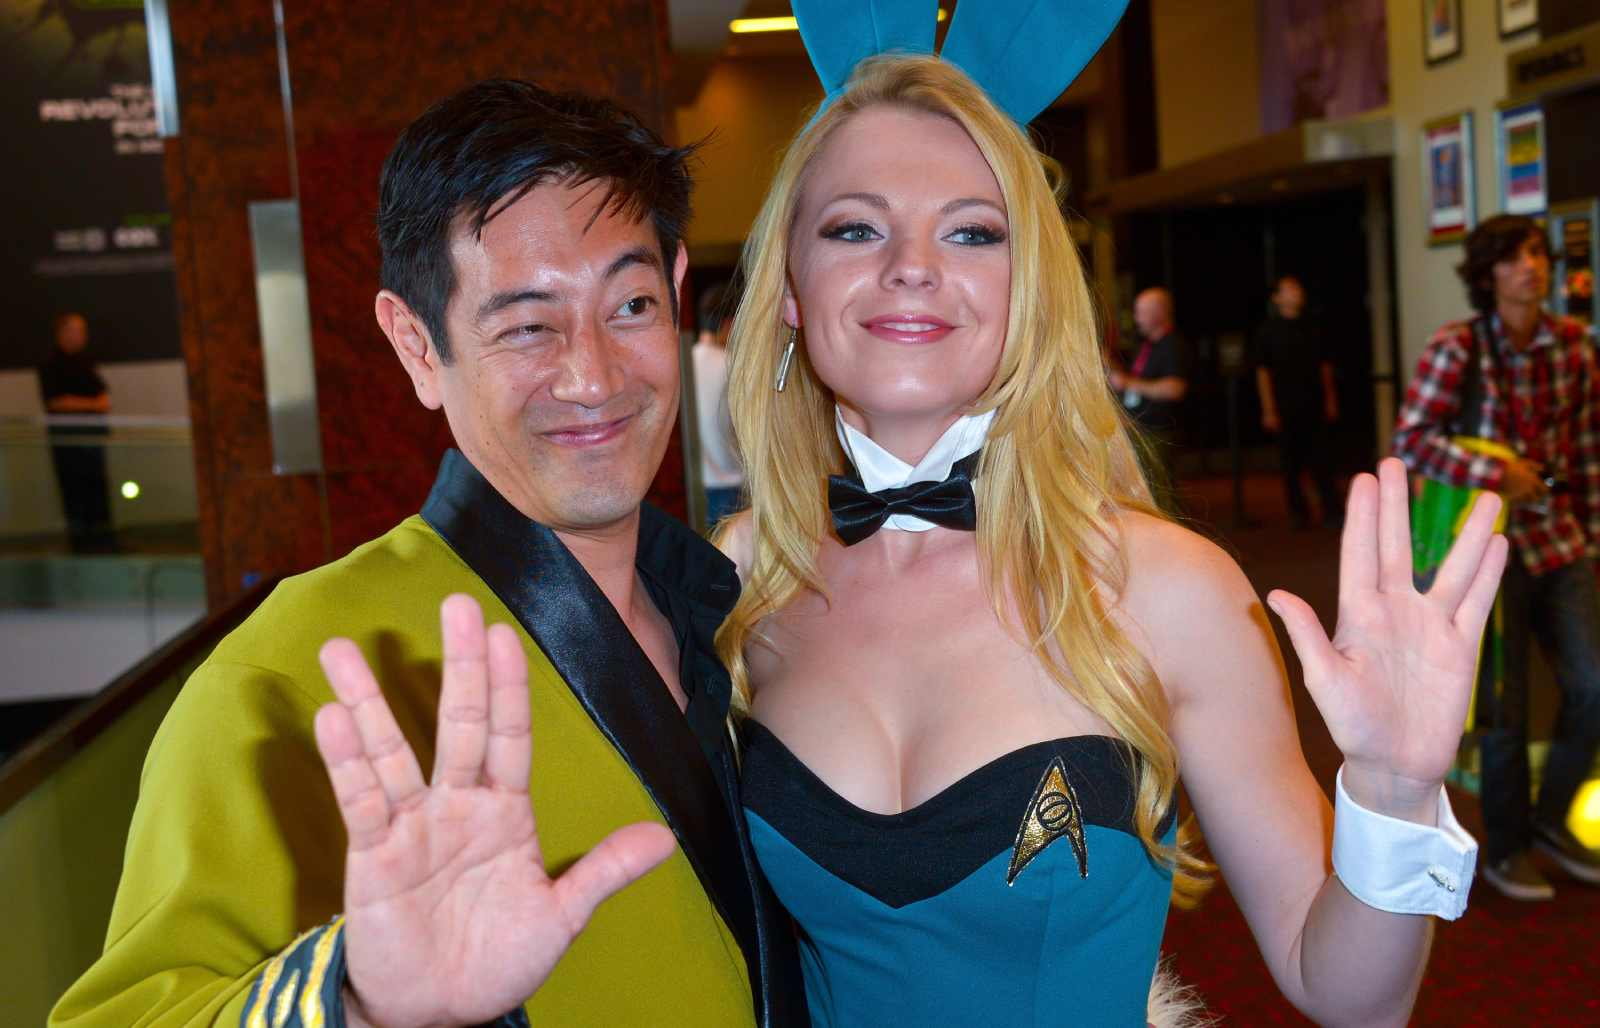 Grant Imahara and Jennifer Newman